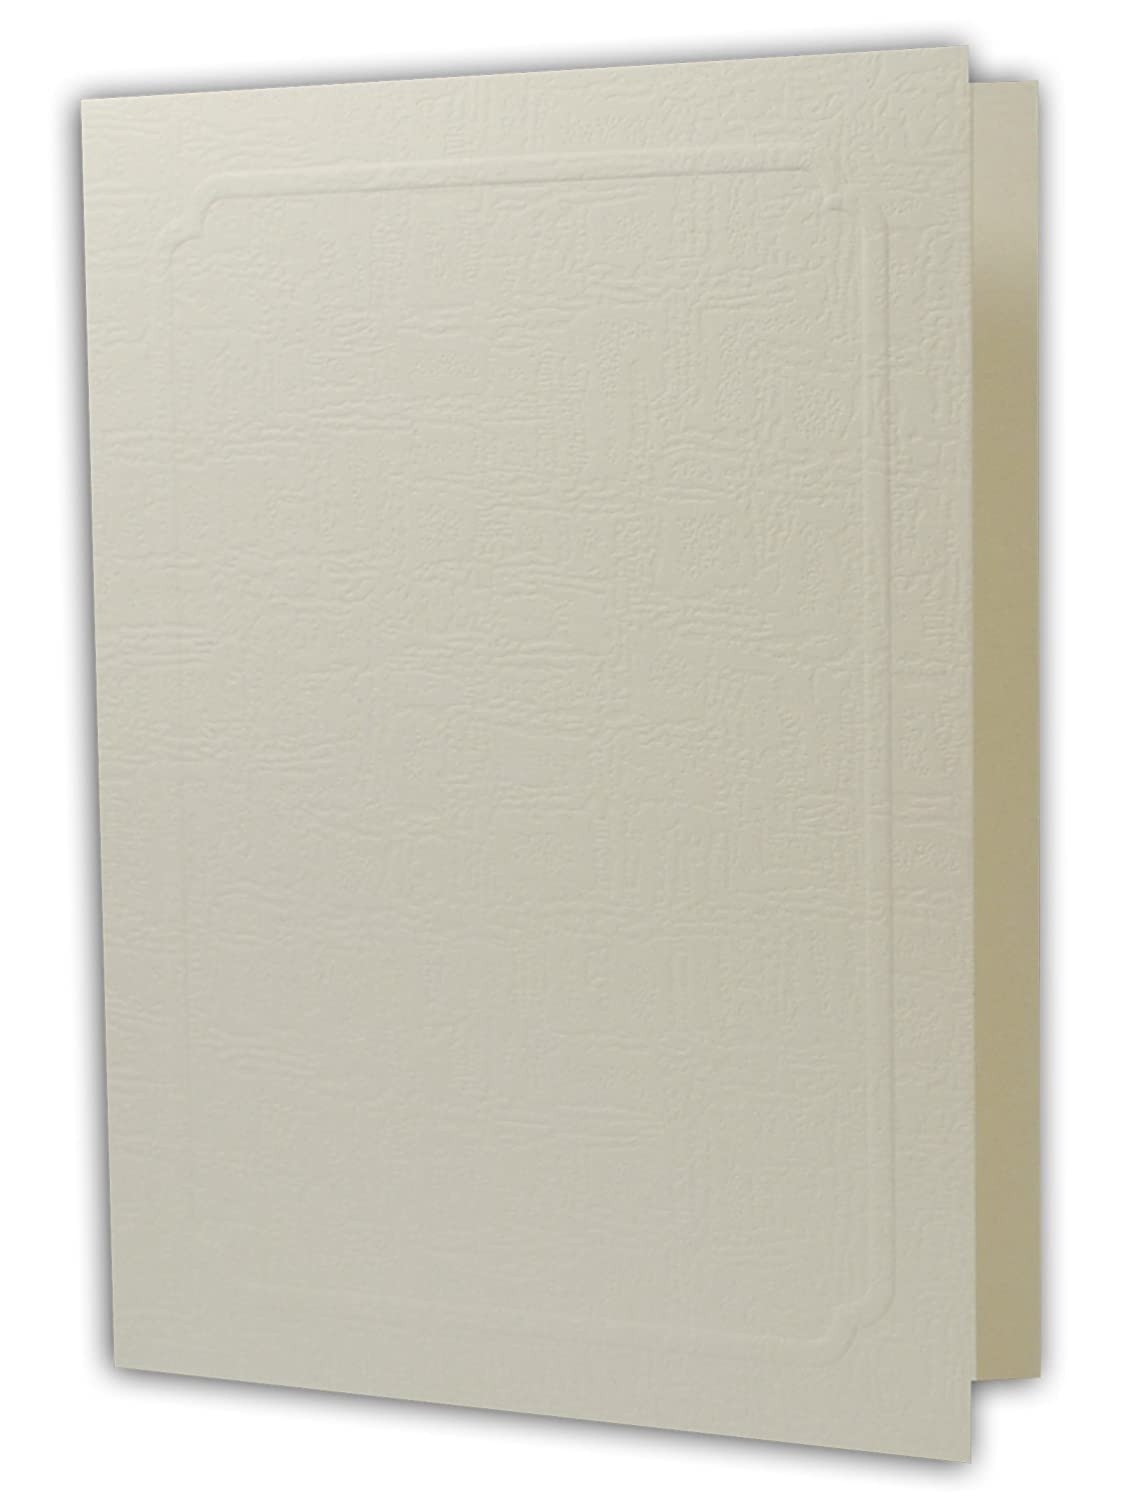 Cut Corners GS010-S Ivory Color Cardboard Photo Folder for 5x7//4x6 Golden State Art Pack of 50